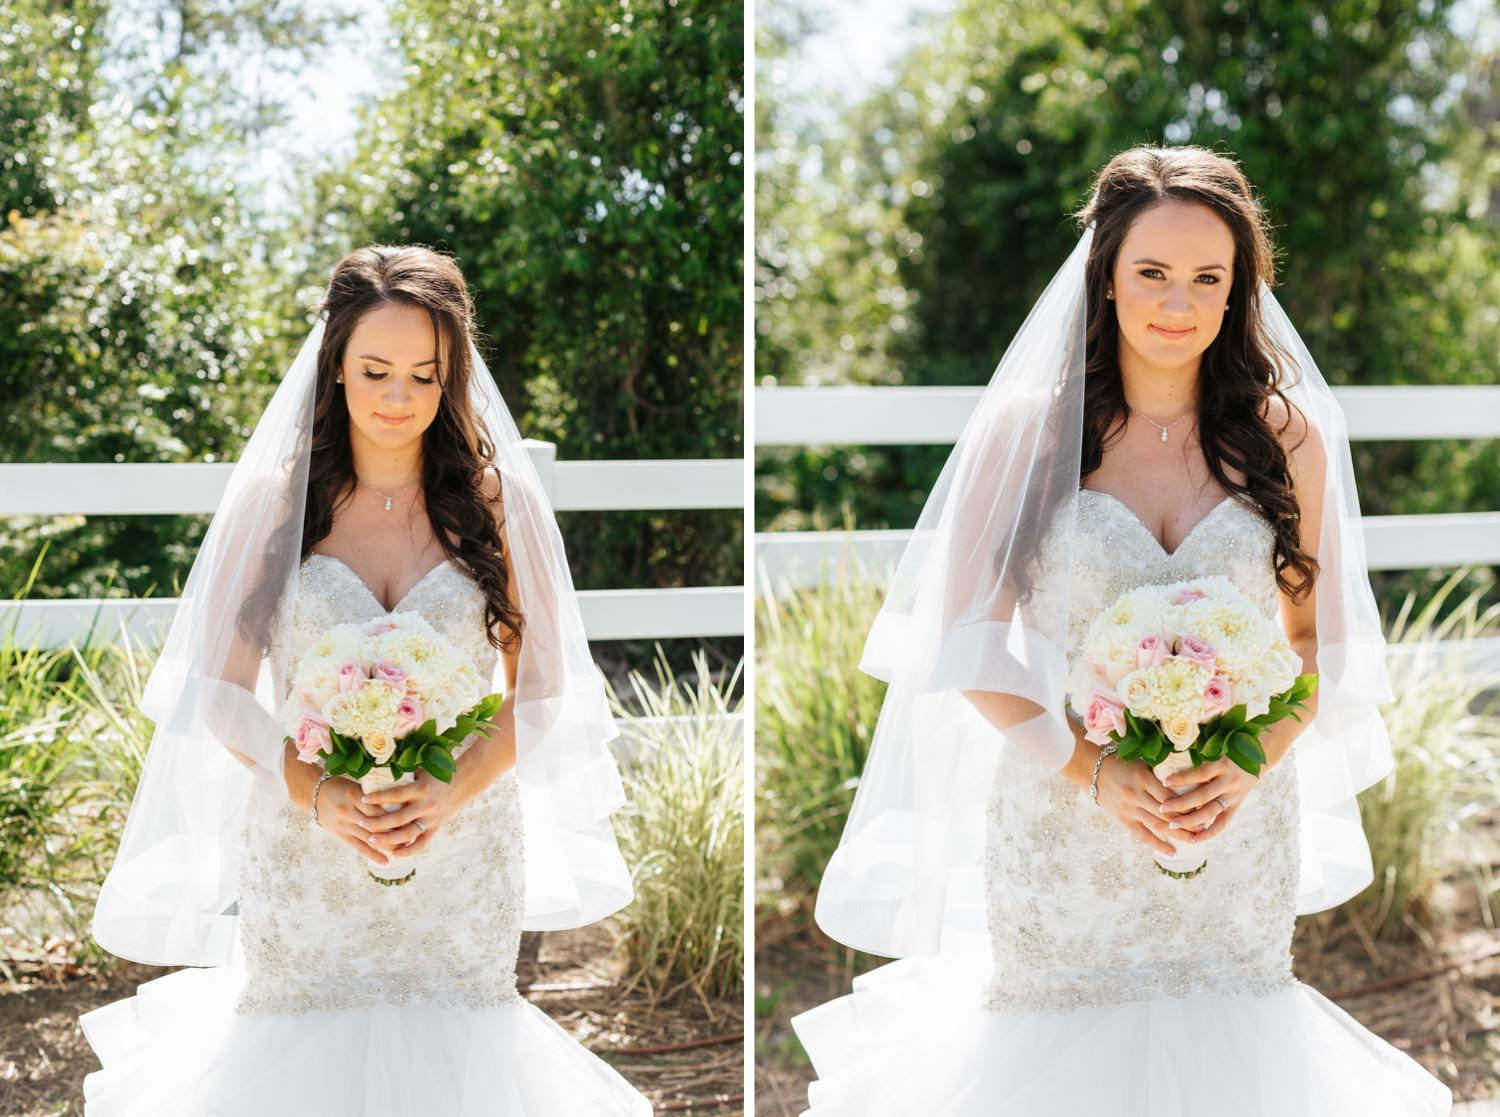 Natural Light Bridal Portraits - https://brittneyhannonphotography.com